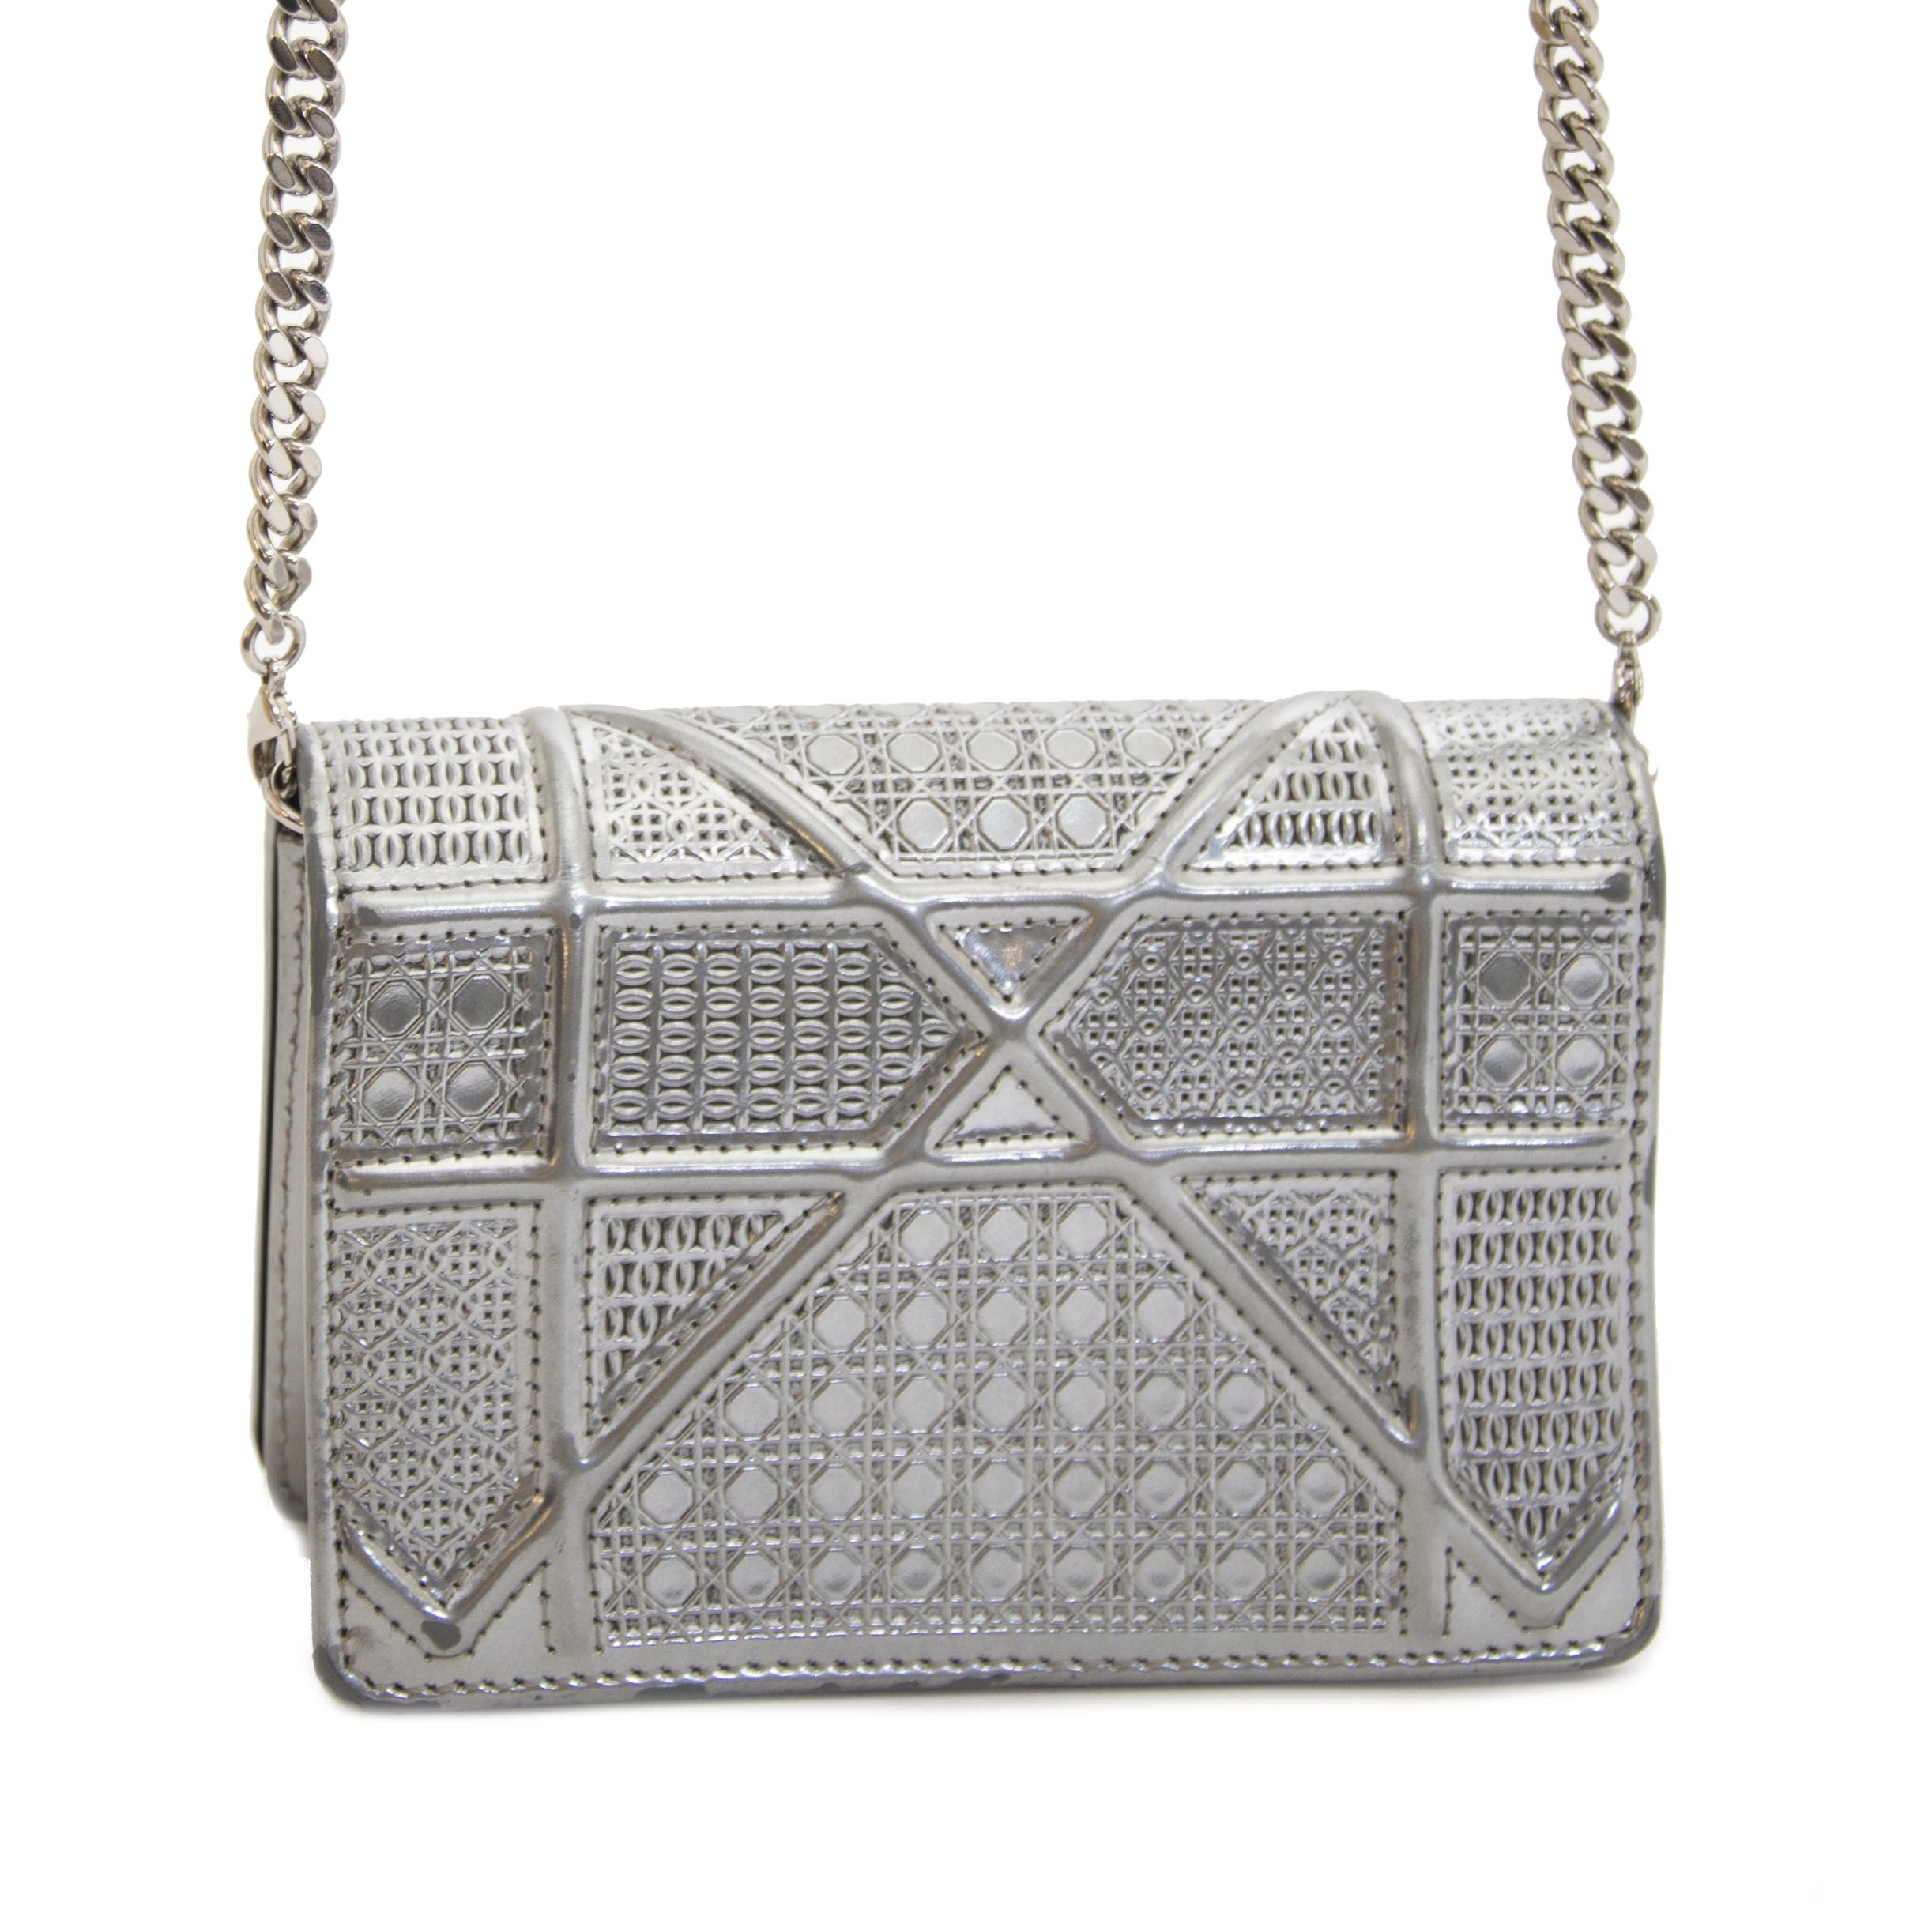 Authentic second hand vintage Dior Diorama Mini Silver Bag buy online webshop LabelLOV